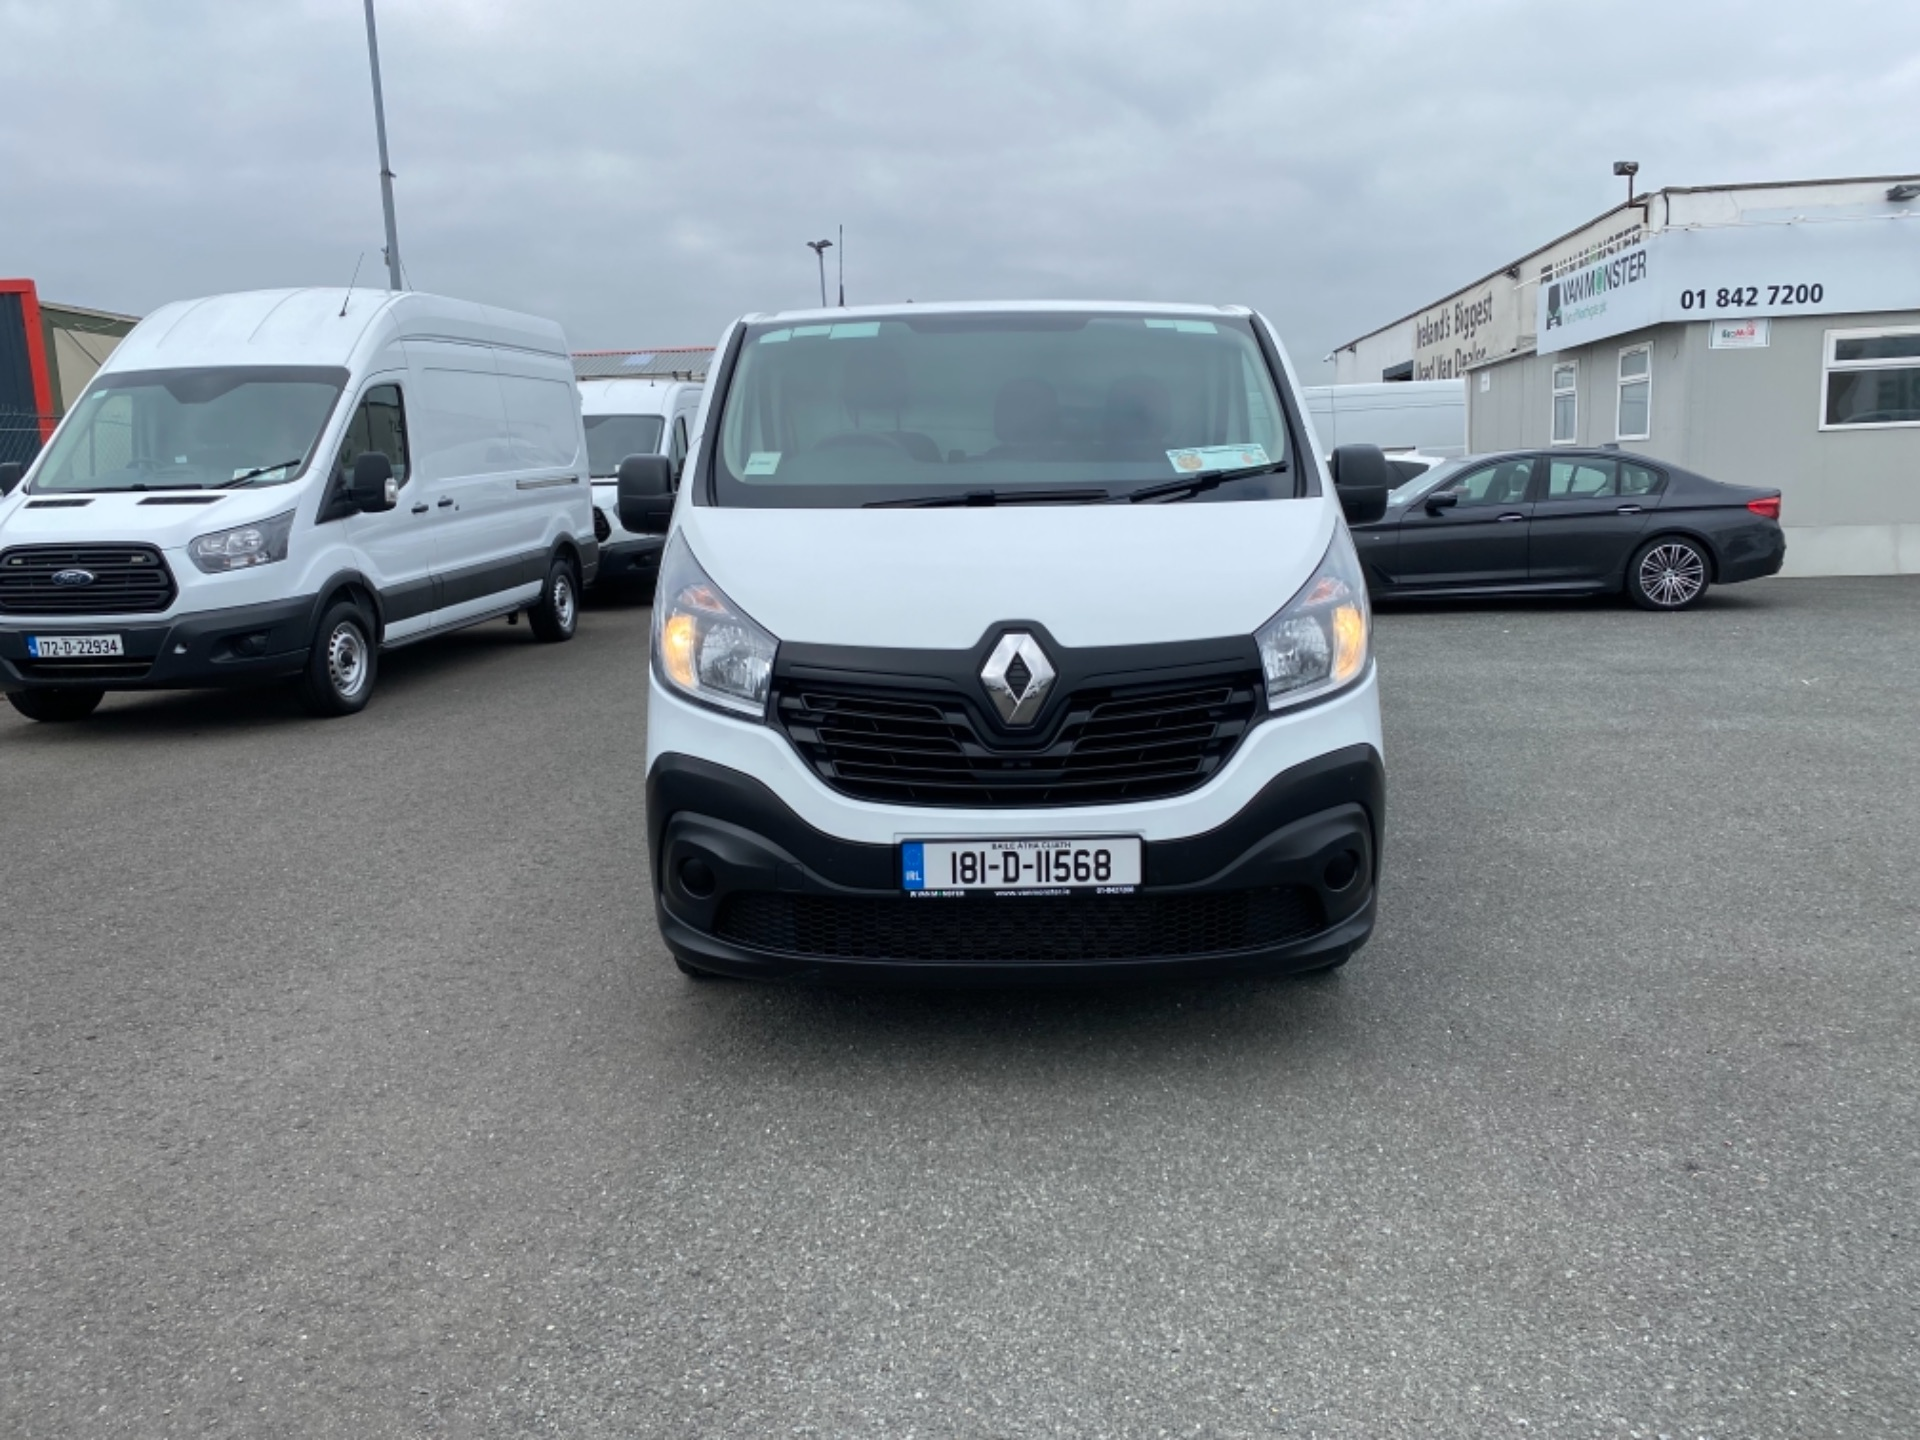 2018 Renault Trafic LL29 DCI 120 Business 3DR (181D11568) Image 2